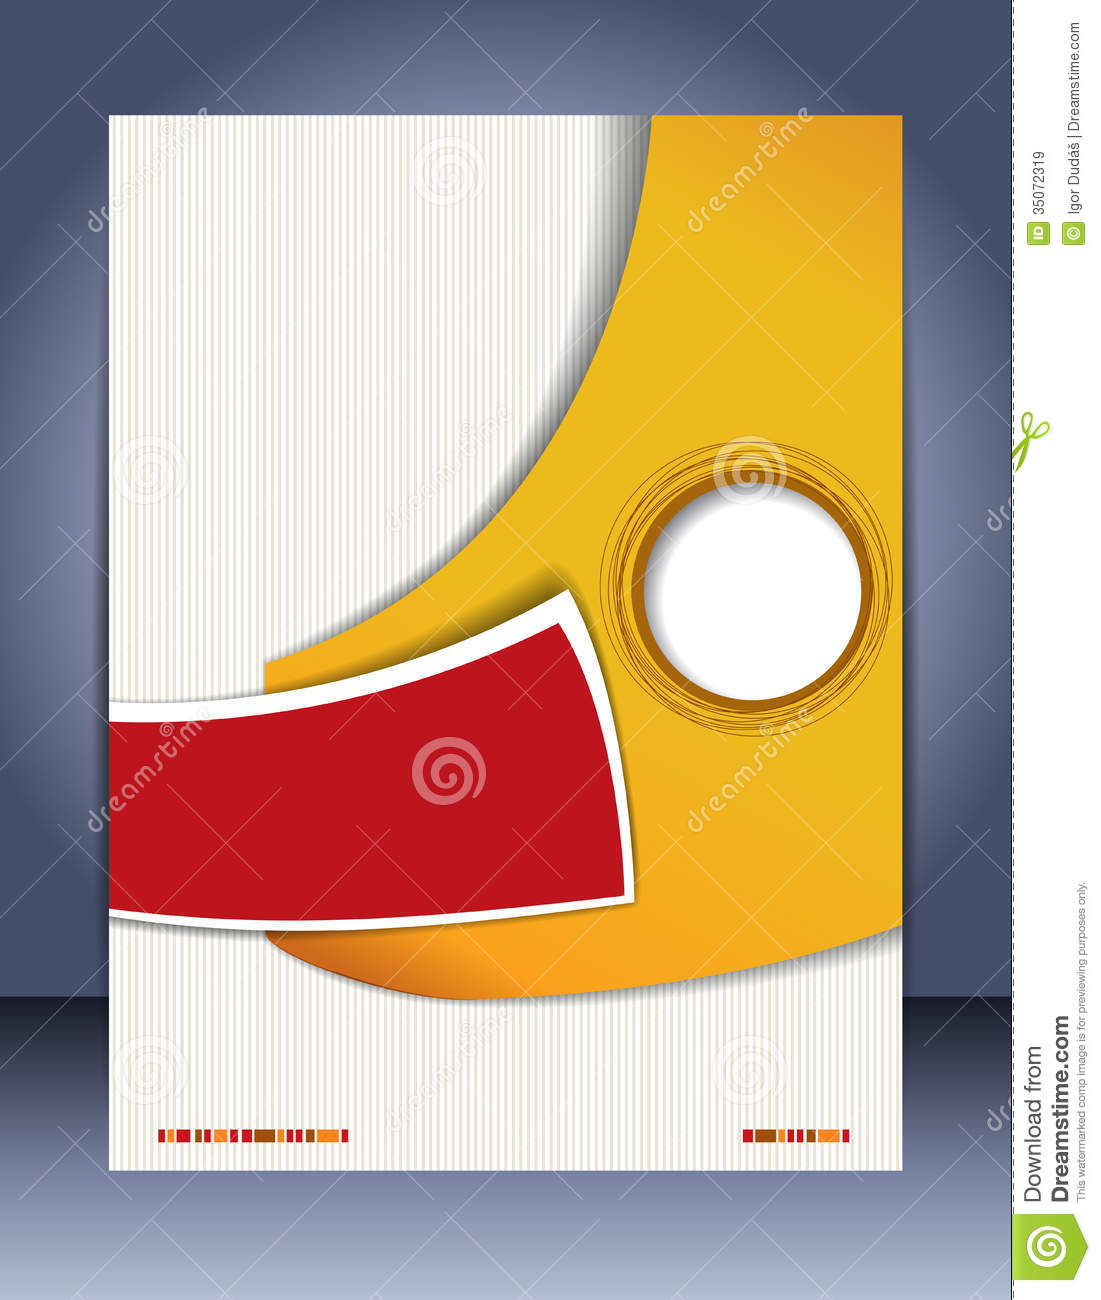 Brochure design royalty free stock images image 35072319 for Background for brochure design